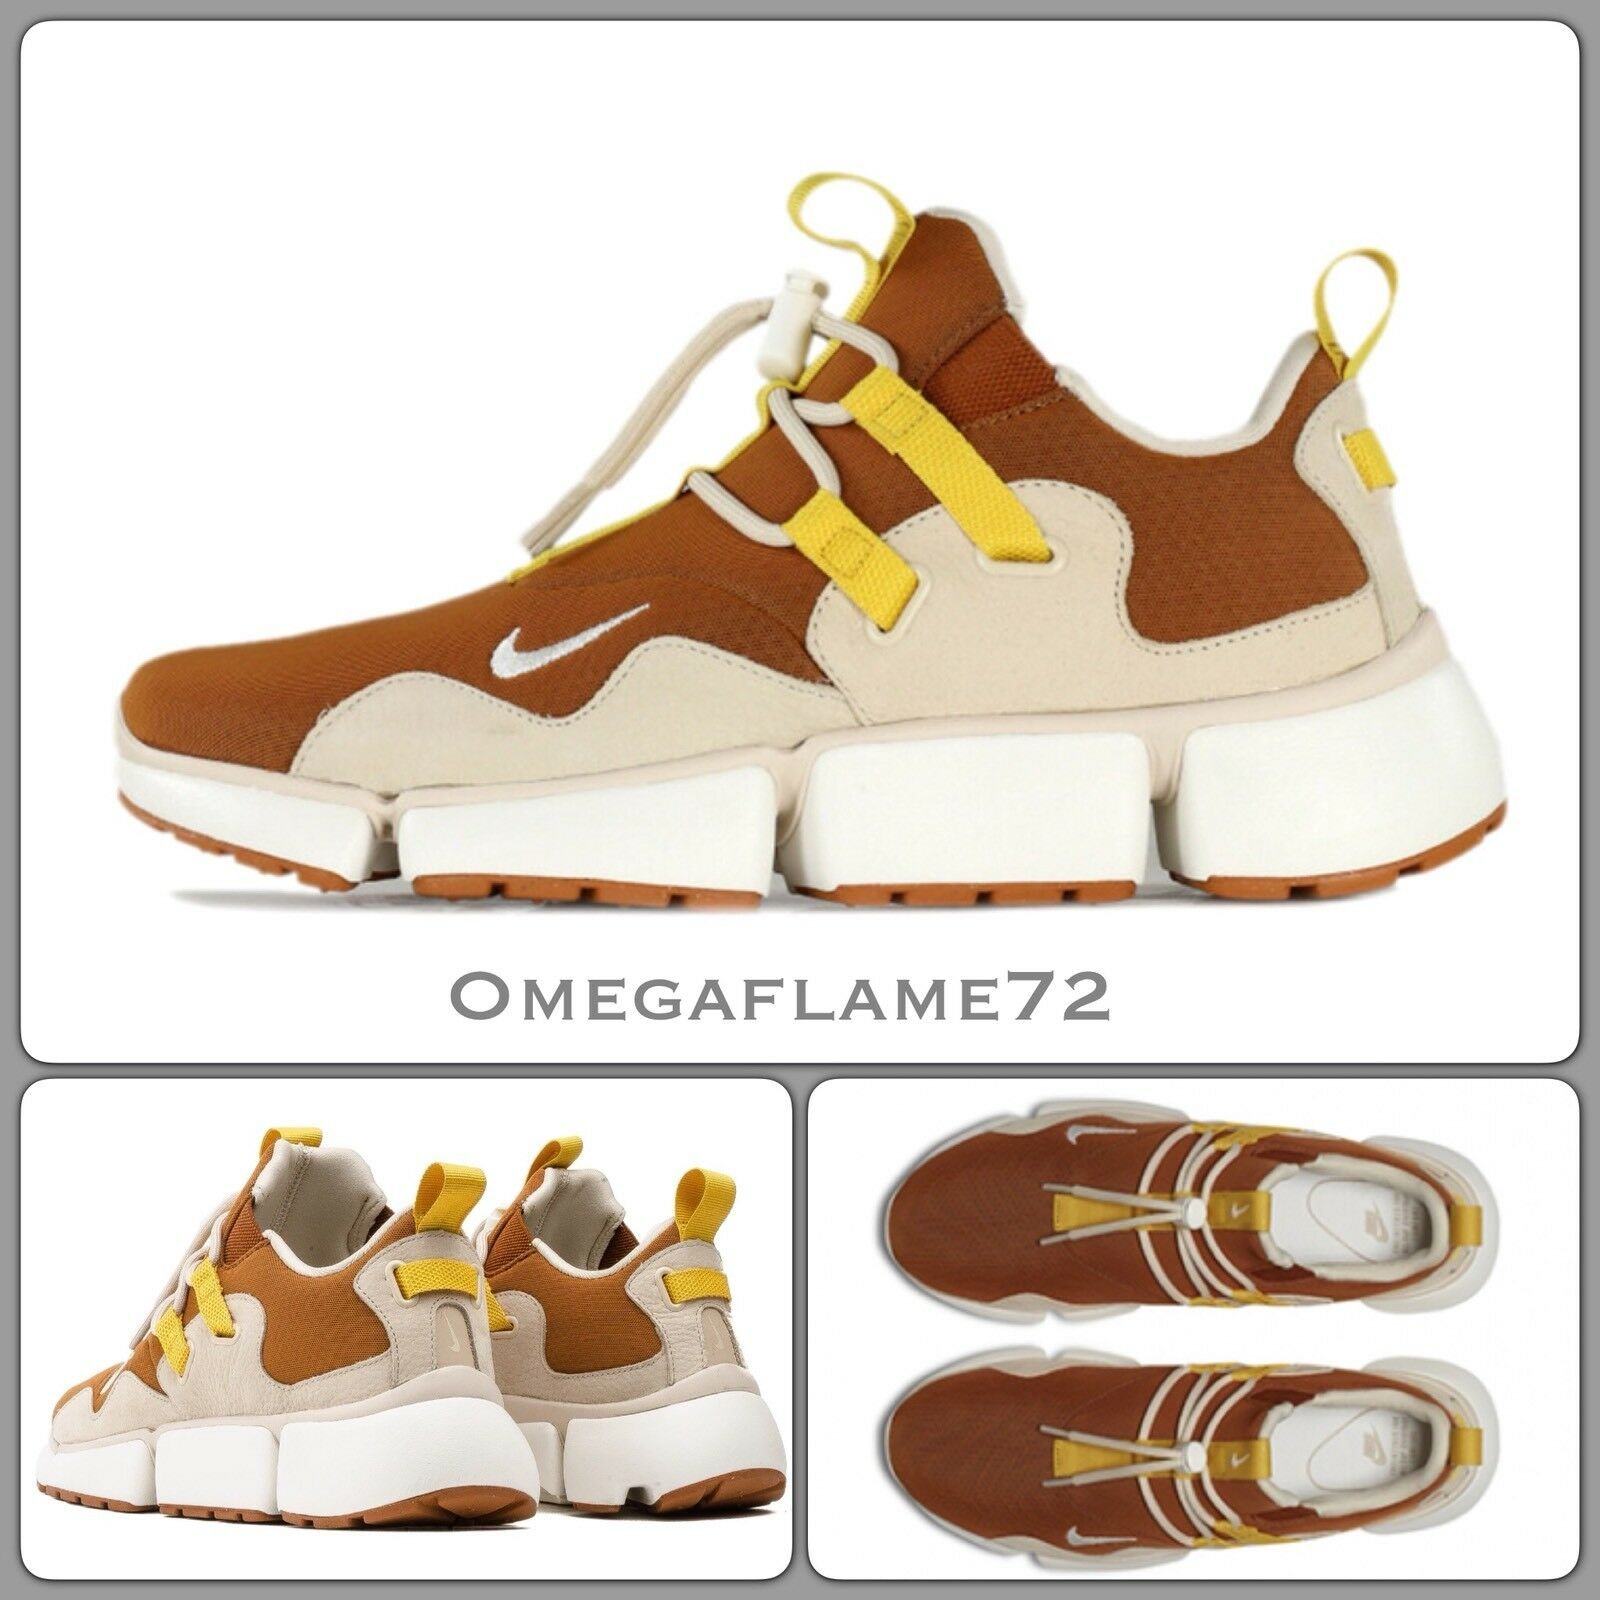 Nike Pocketknife DM Tawny, Sail, Oatmeal 910571-200 Sz USA UK 8, EU 42.5, USA Sz 9 0fe51e